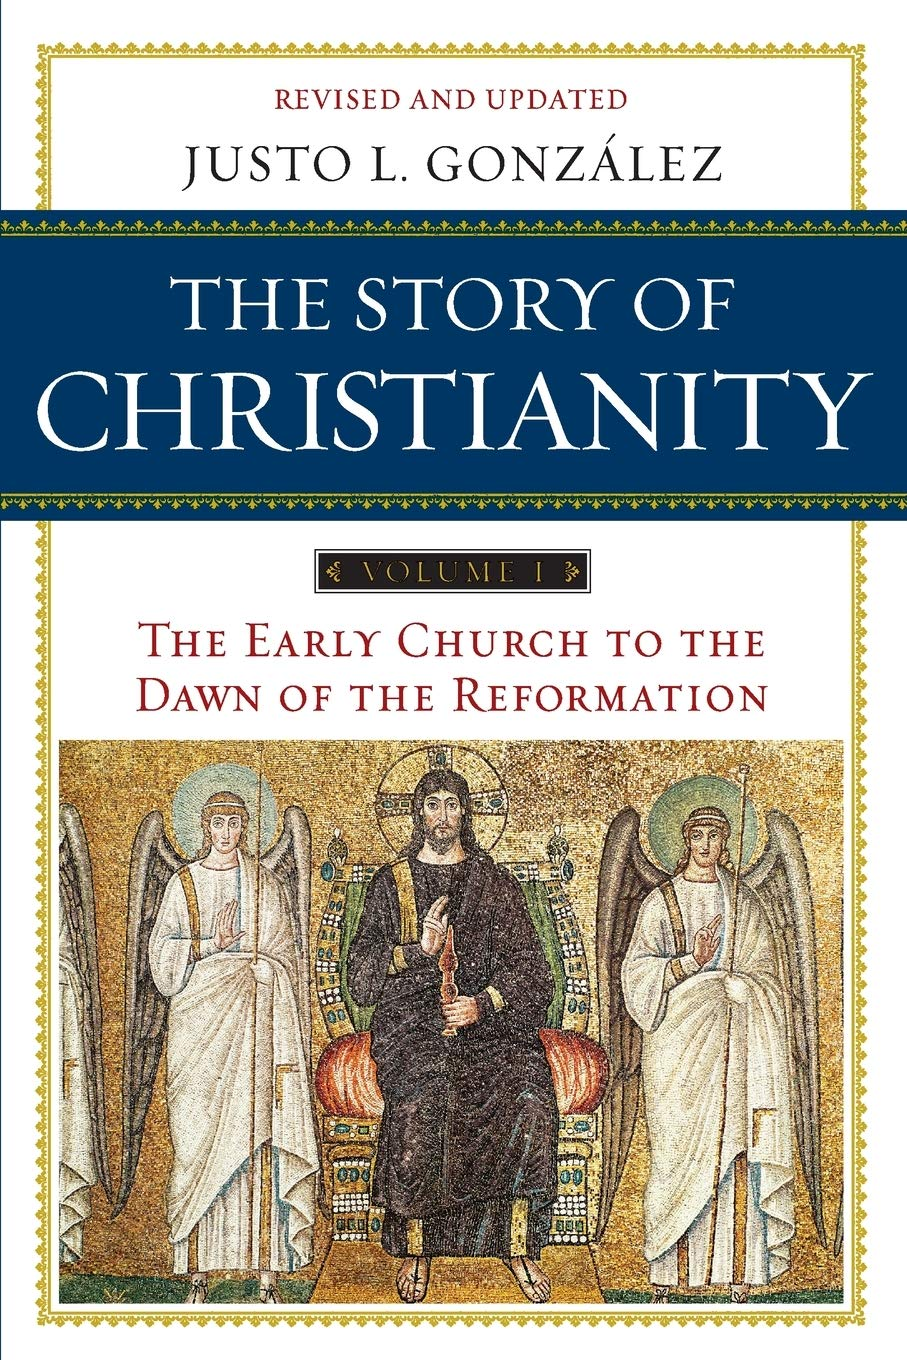 The Story of Christianity: Volume 1: The Early Church to the Dawn of the Reformation, Justo Gonzalez